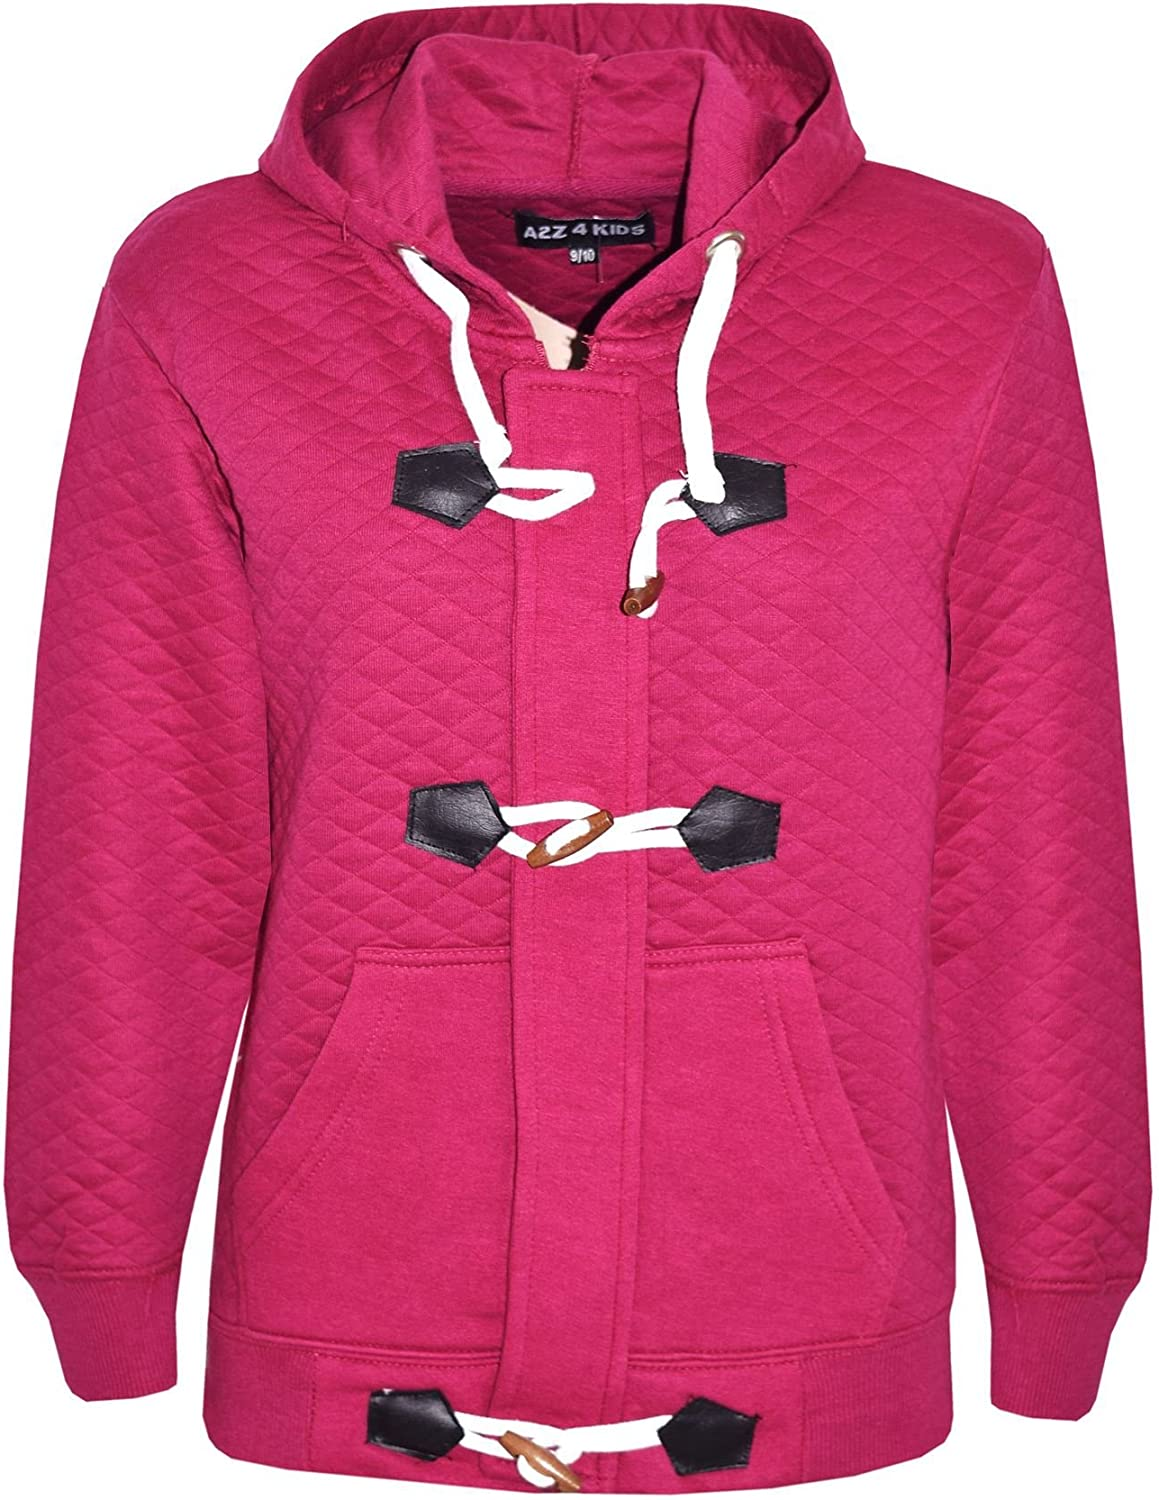 A2Z 4 Kids/® Kids Hooded Jacket Girls Cerise Fur Parka School Jackets Outwear Coat New Age 7 8 9 10 11 12 13 Years